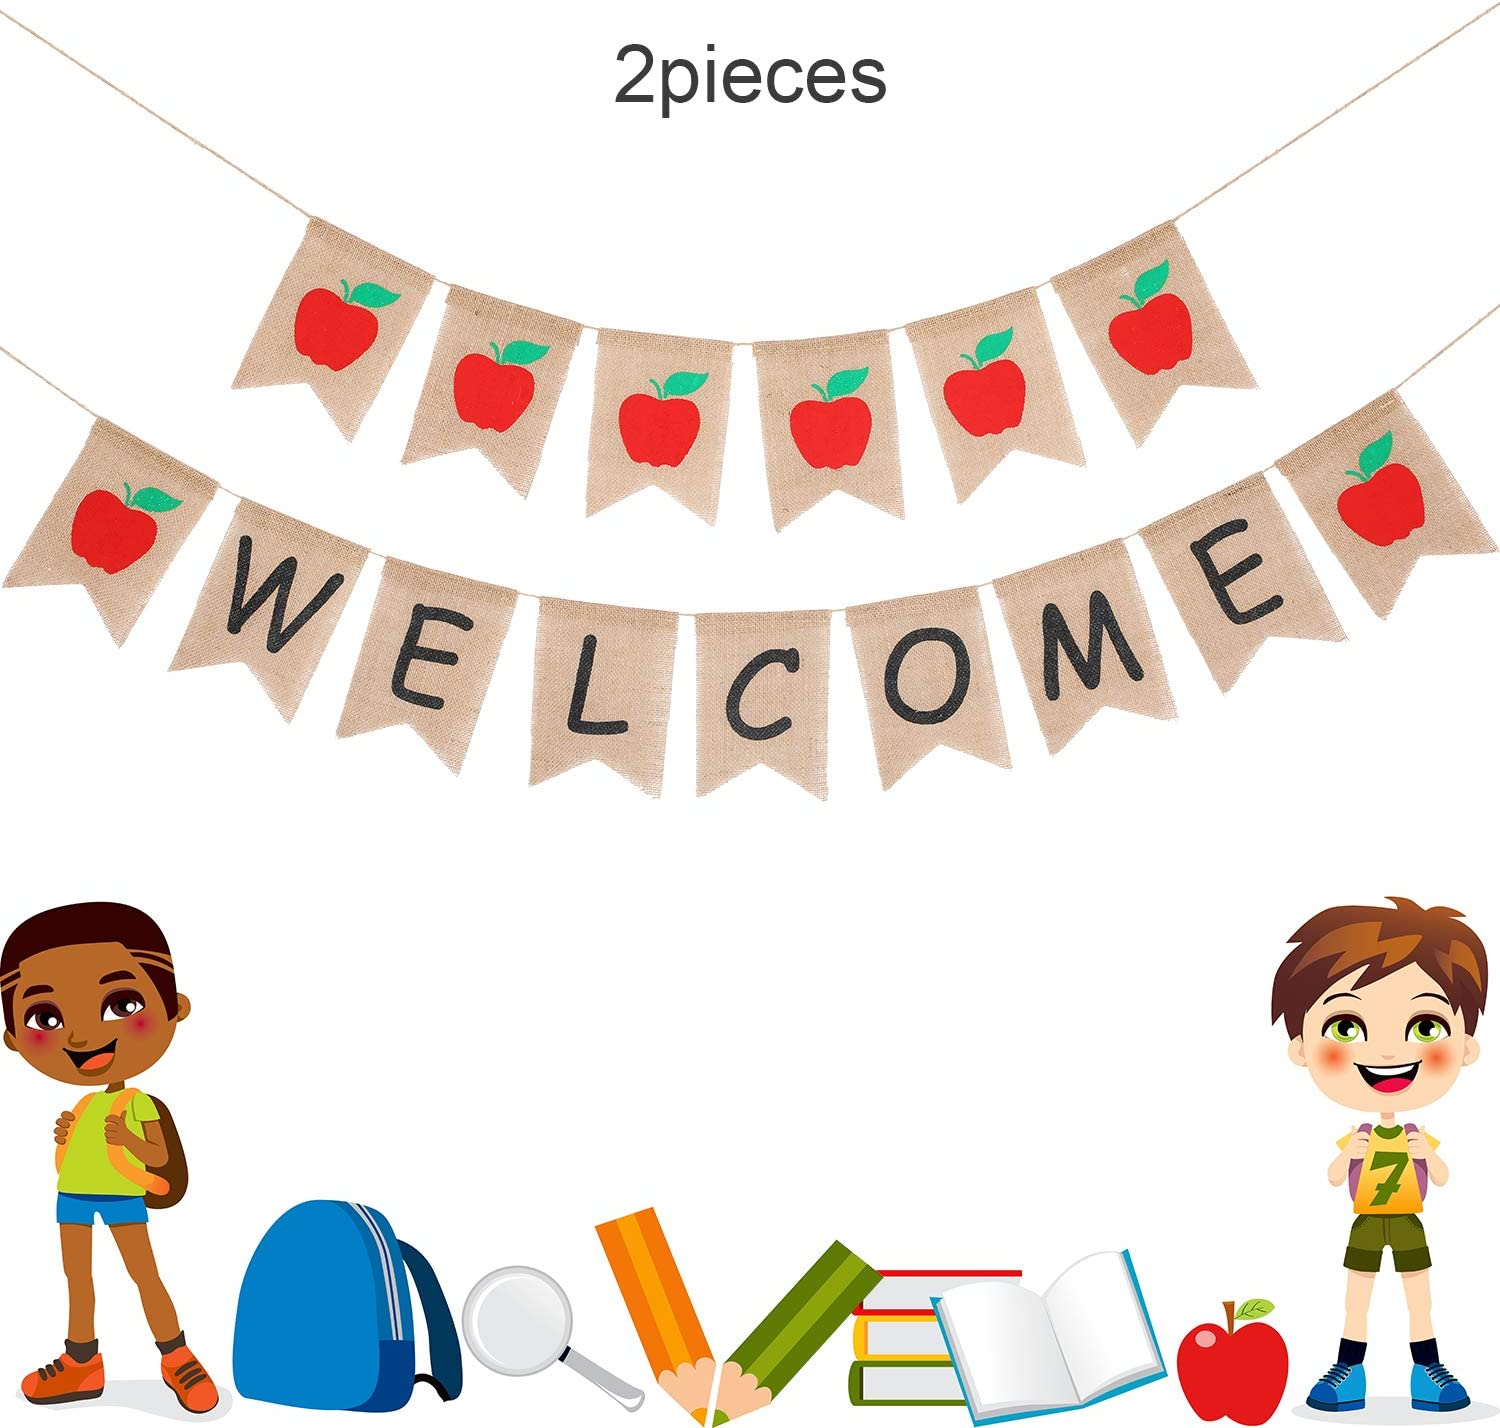 Amazon Com 2 Pieces Welcome Banner Apple Banner Burlap Apple Bunting Banners For Welcome To School Baby Shower Party Decoration Home Kitchen